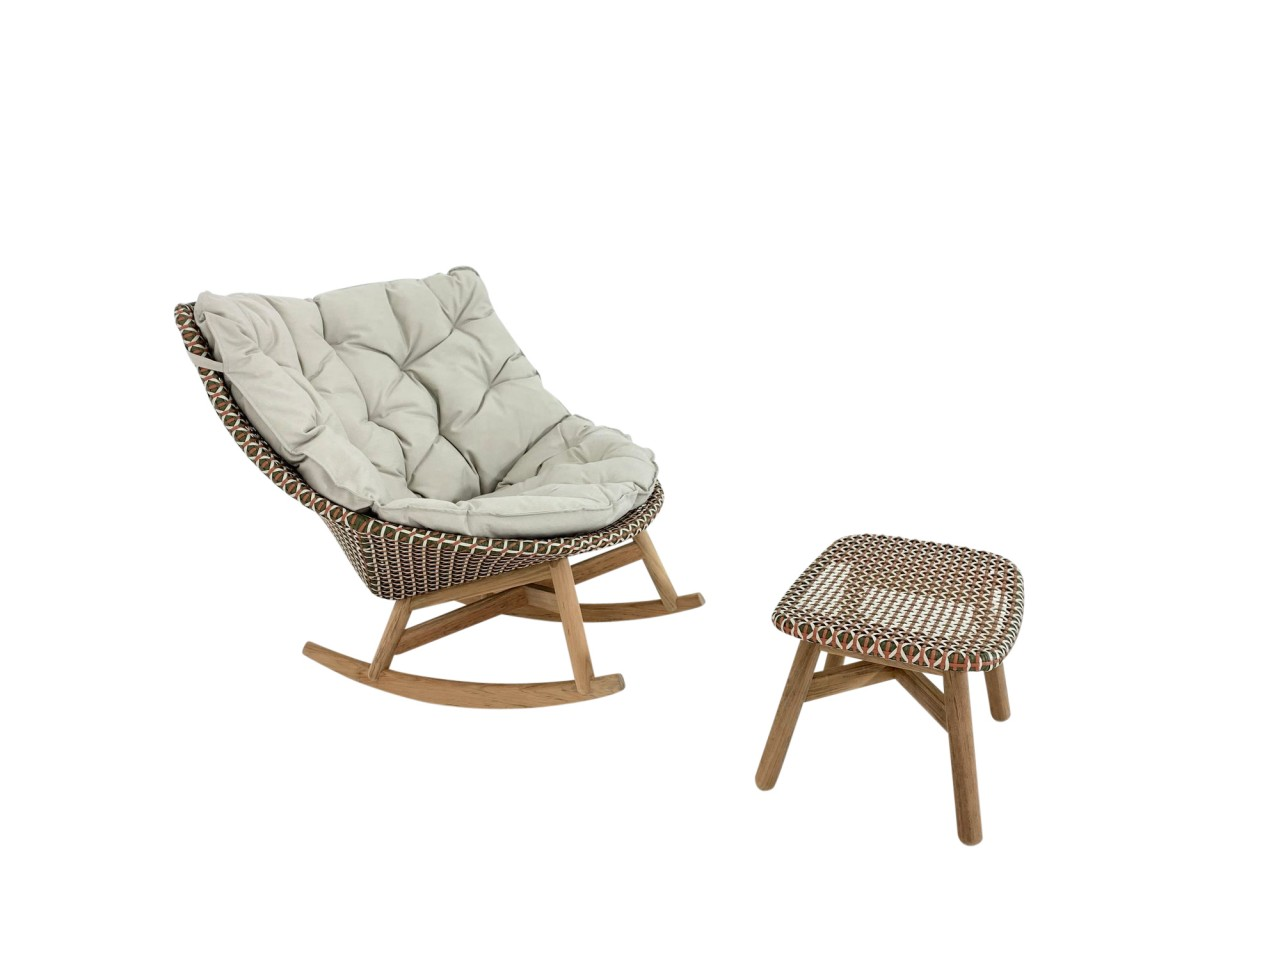 Dedon Mbrace Rocking Chair Schaukel Sessel In Chestnut Mit